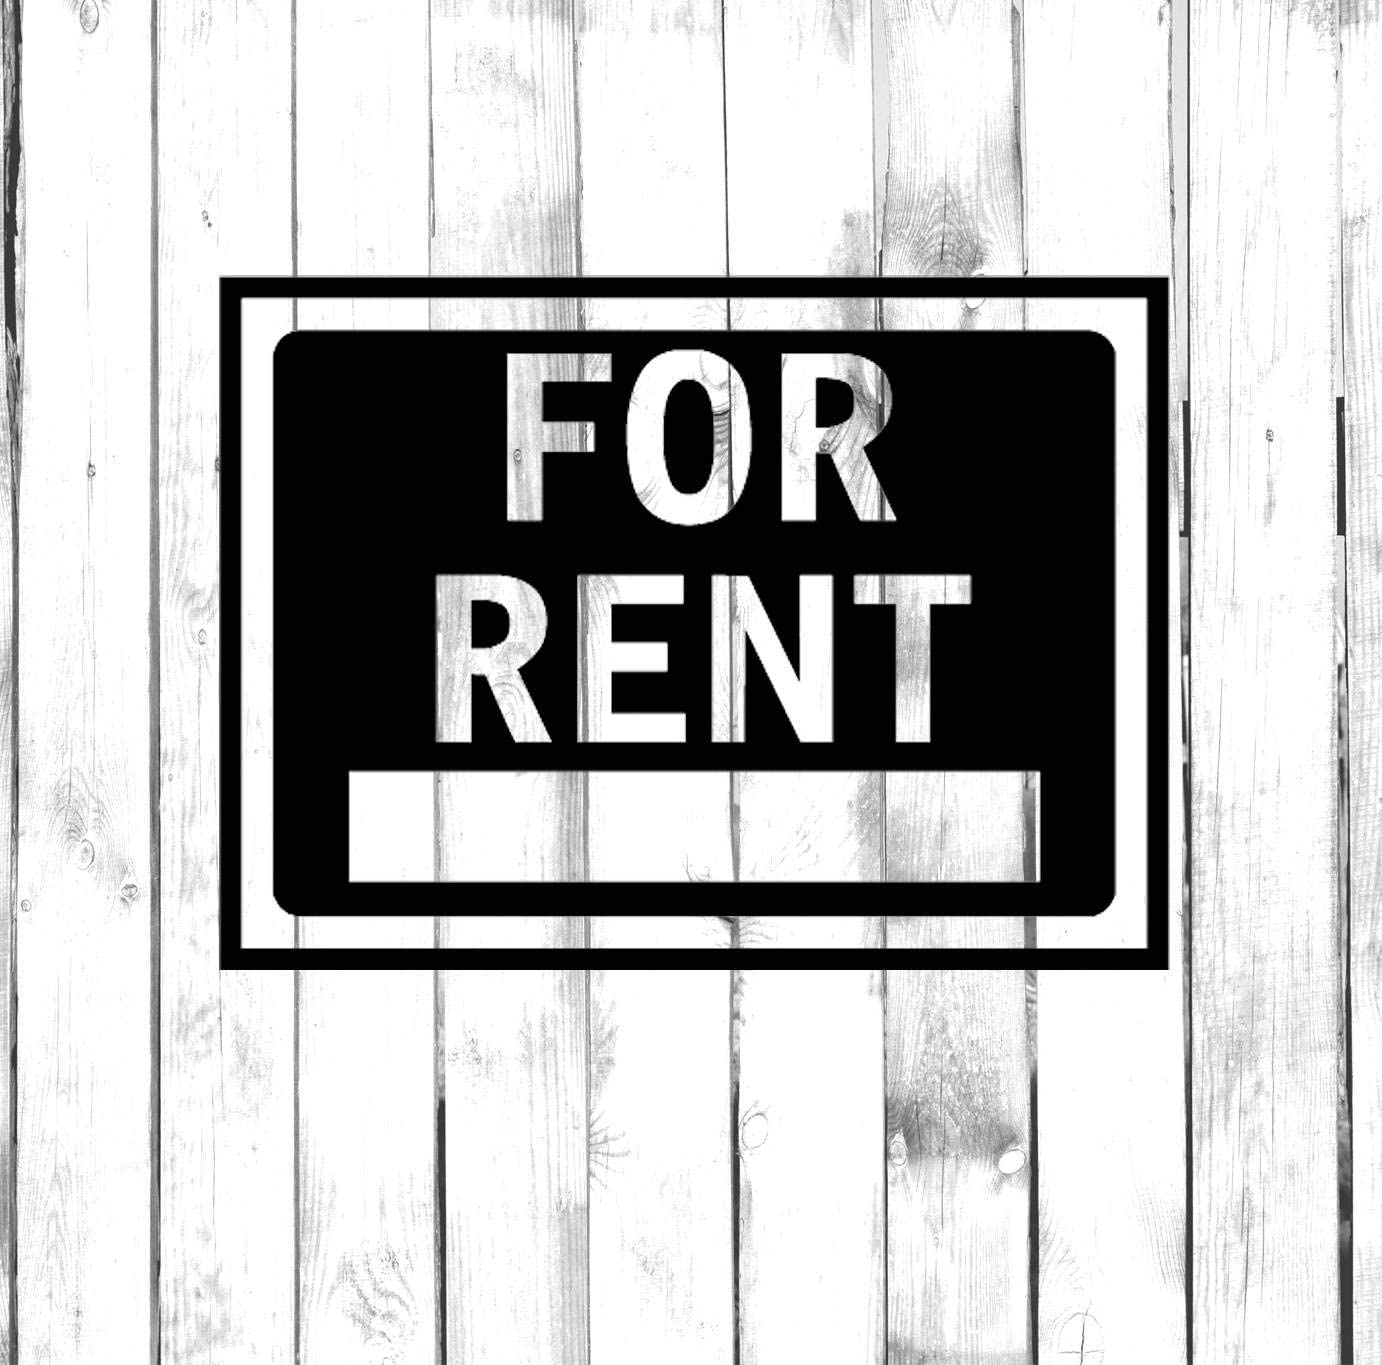 for Rent Property Sign Car Sticker,Vinyl Window Decals for Bottle Laptop Cars Wall Art Quote Funny Stickers